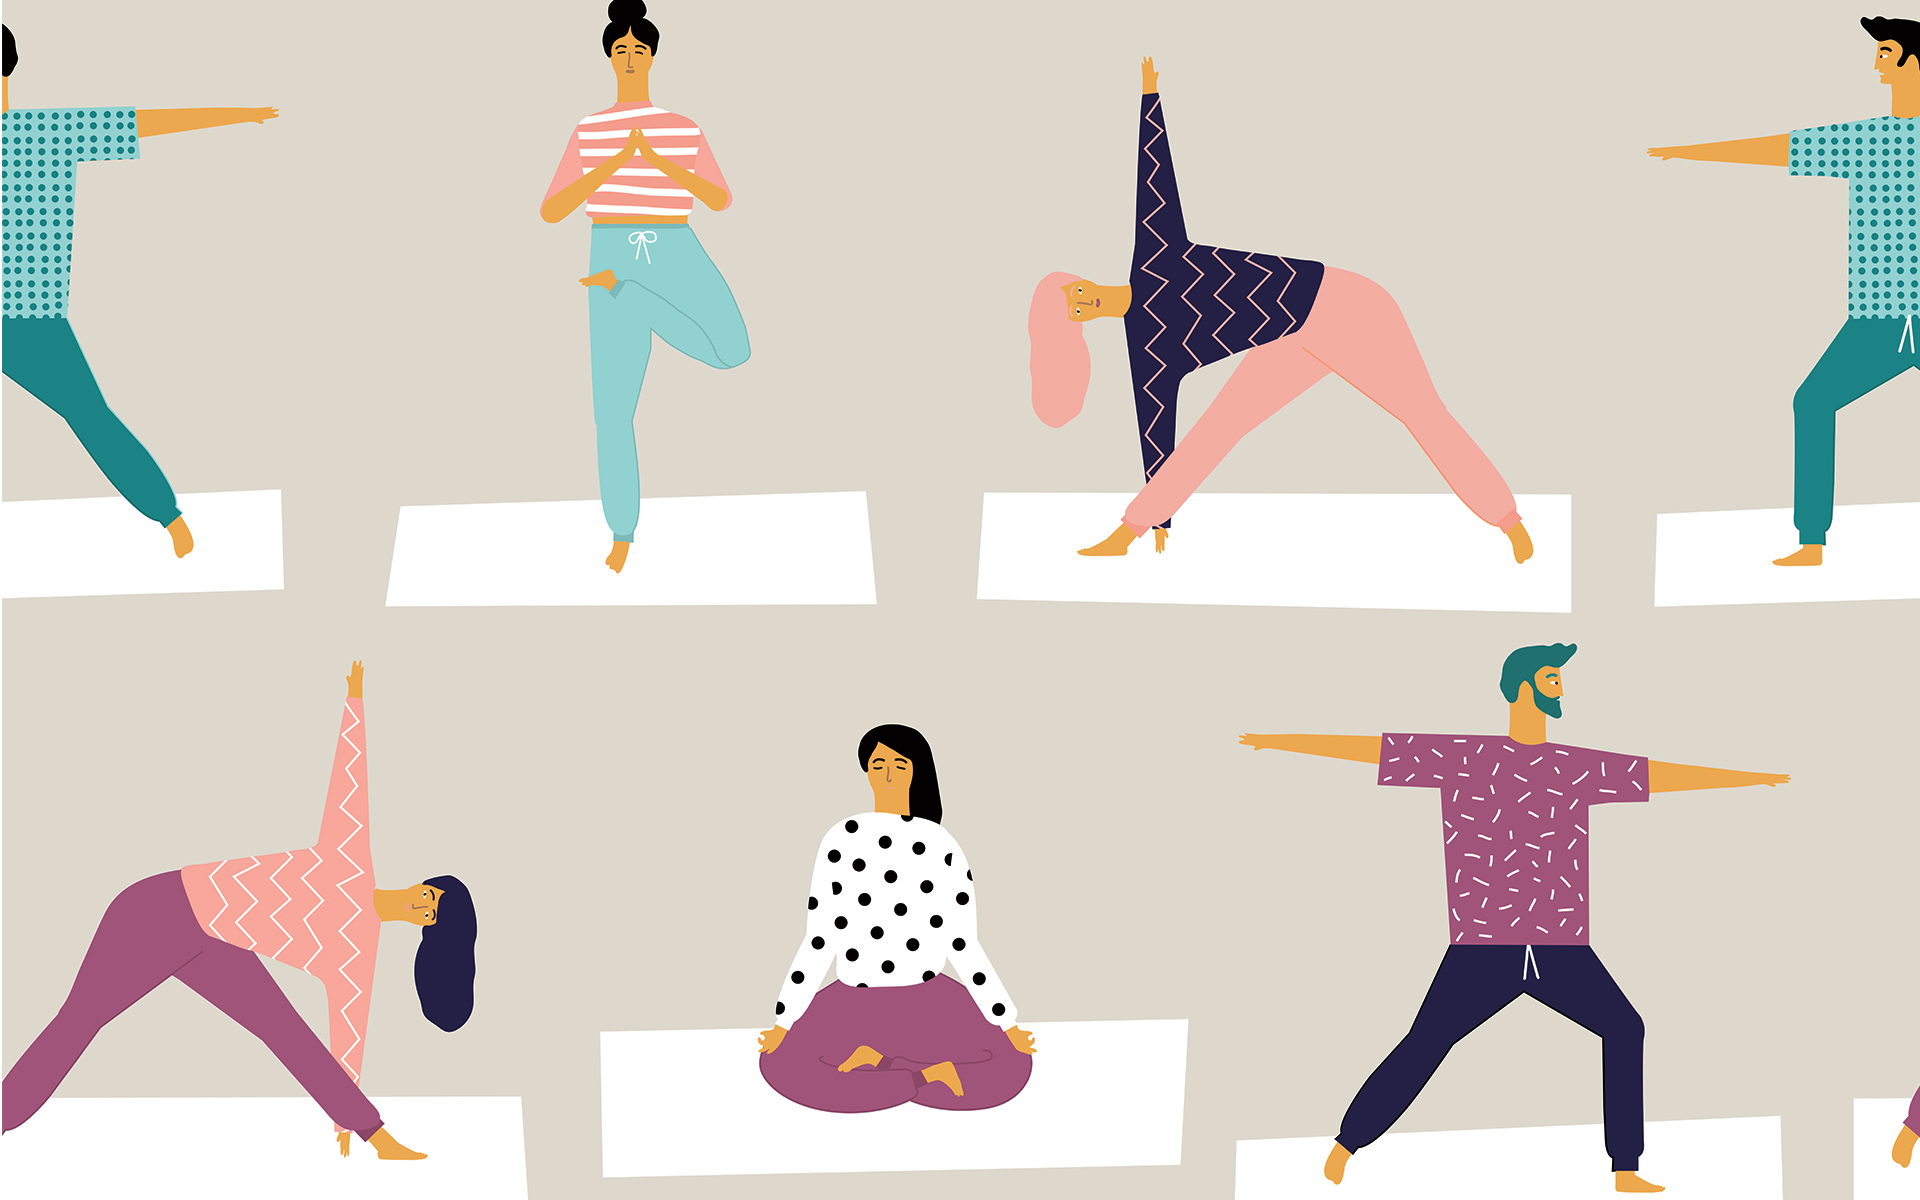 illustration of men and women meditating and doing yoga poses